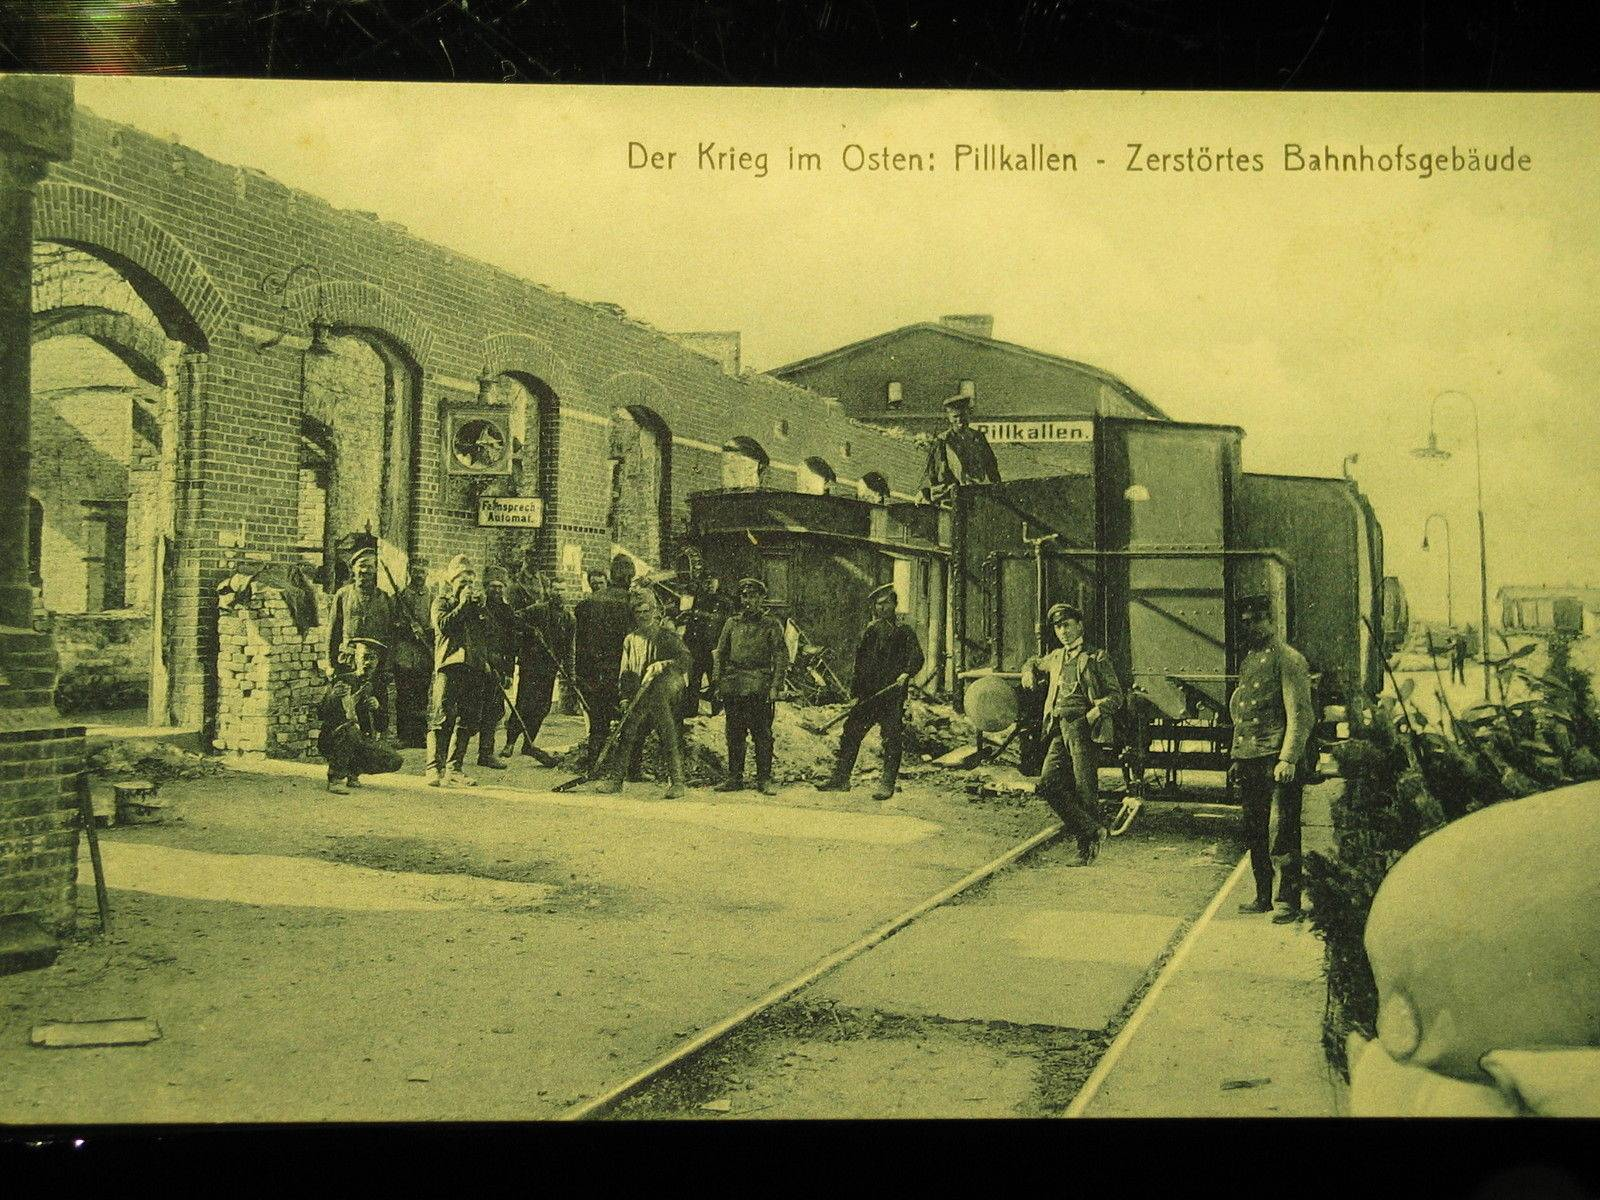 Pillkallen-1915-East-peussia-zerstorter-Bahnhof-destroyed-station.JPG